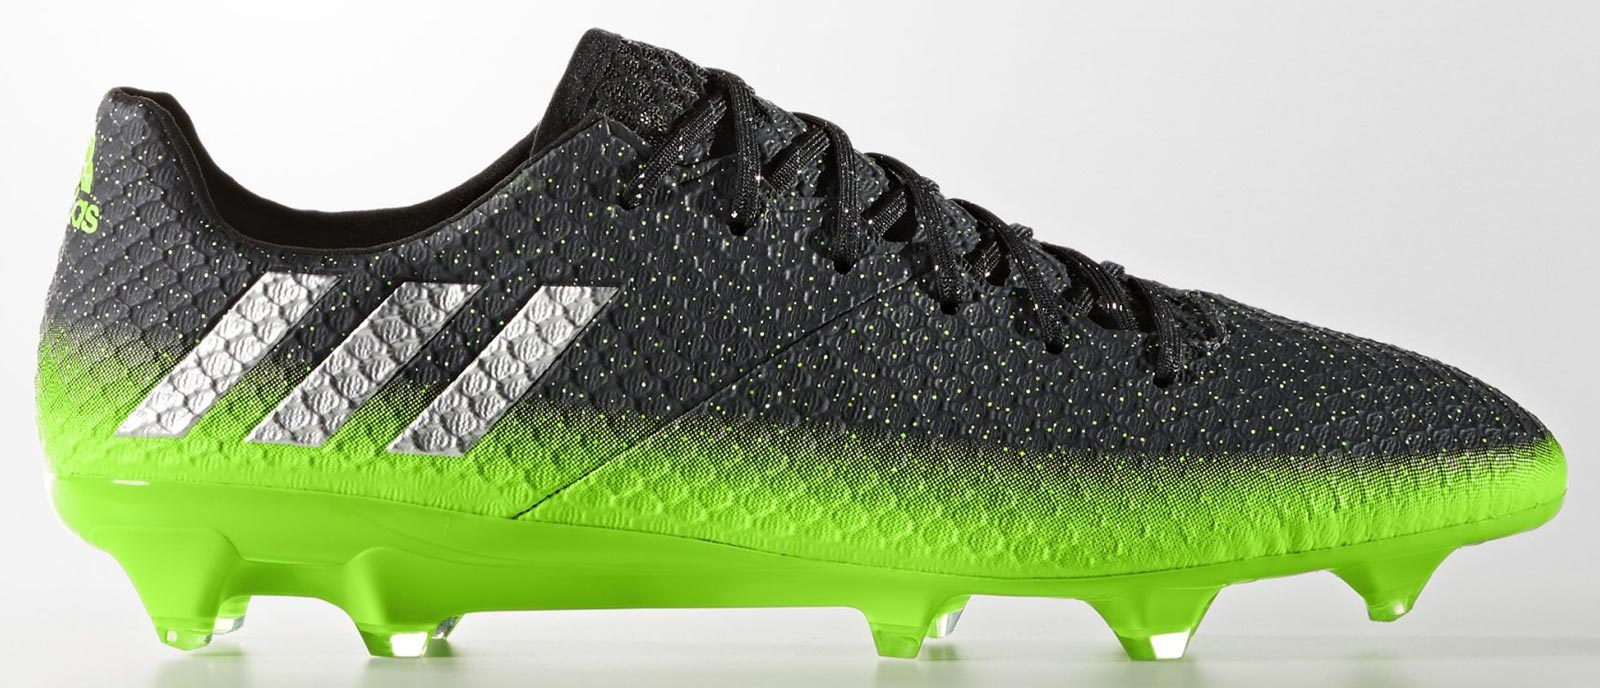 adidas messi 2016 2017 space dust boots released footy. Black Bedroom Furniture Sets. Home Design Ideas